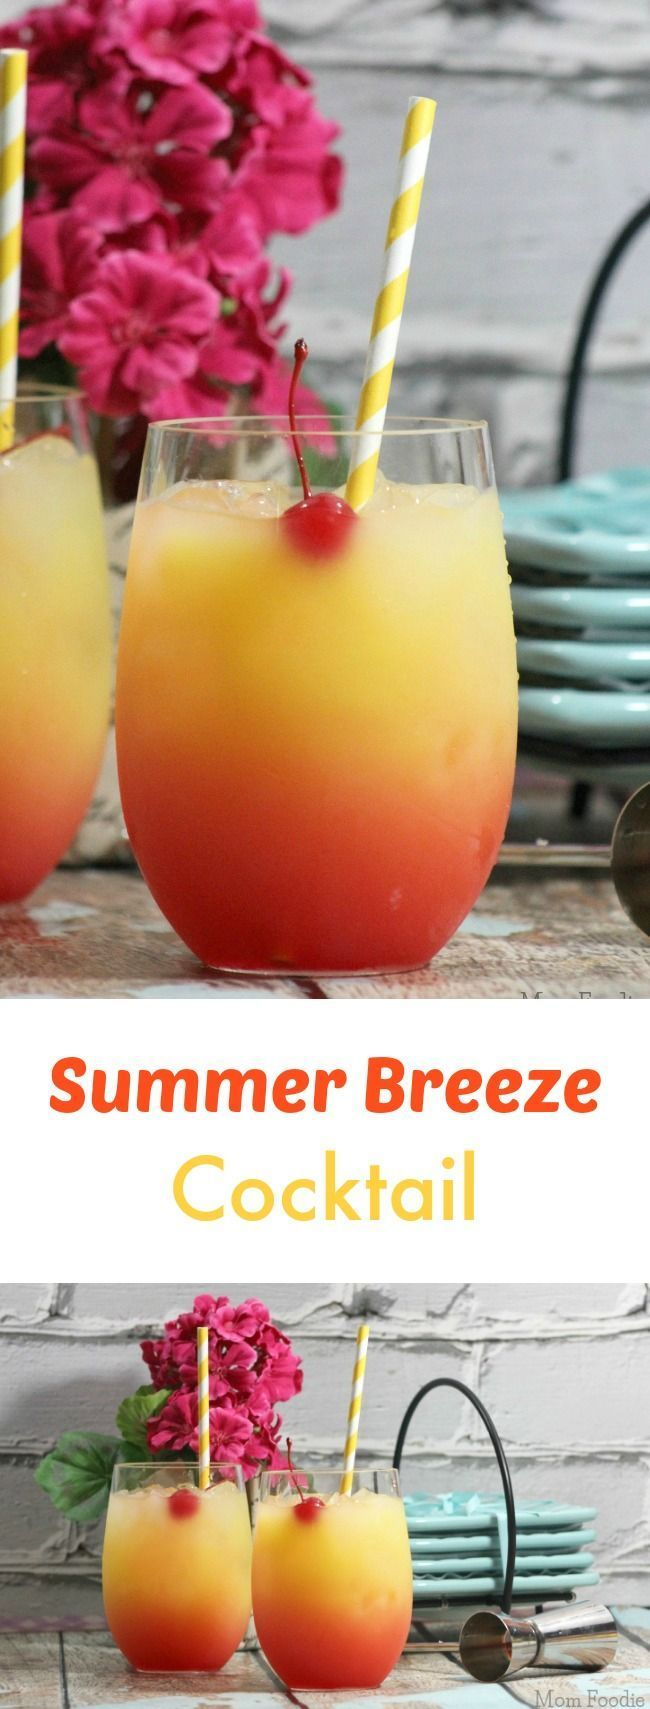 Summer Breeze Cocktail Recipe- great for parties | Cocktails ...